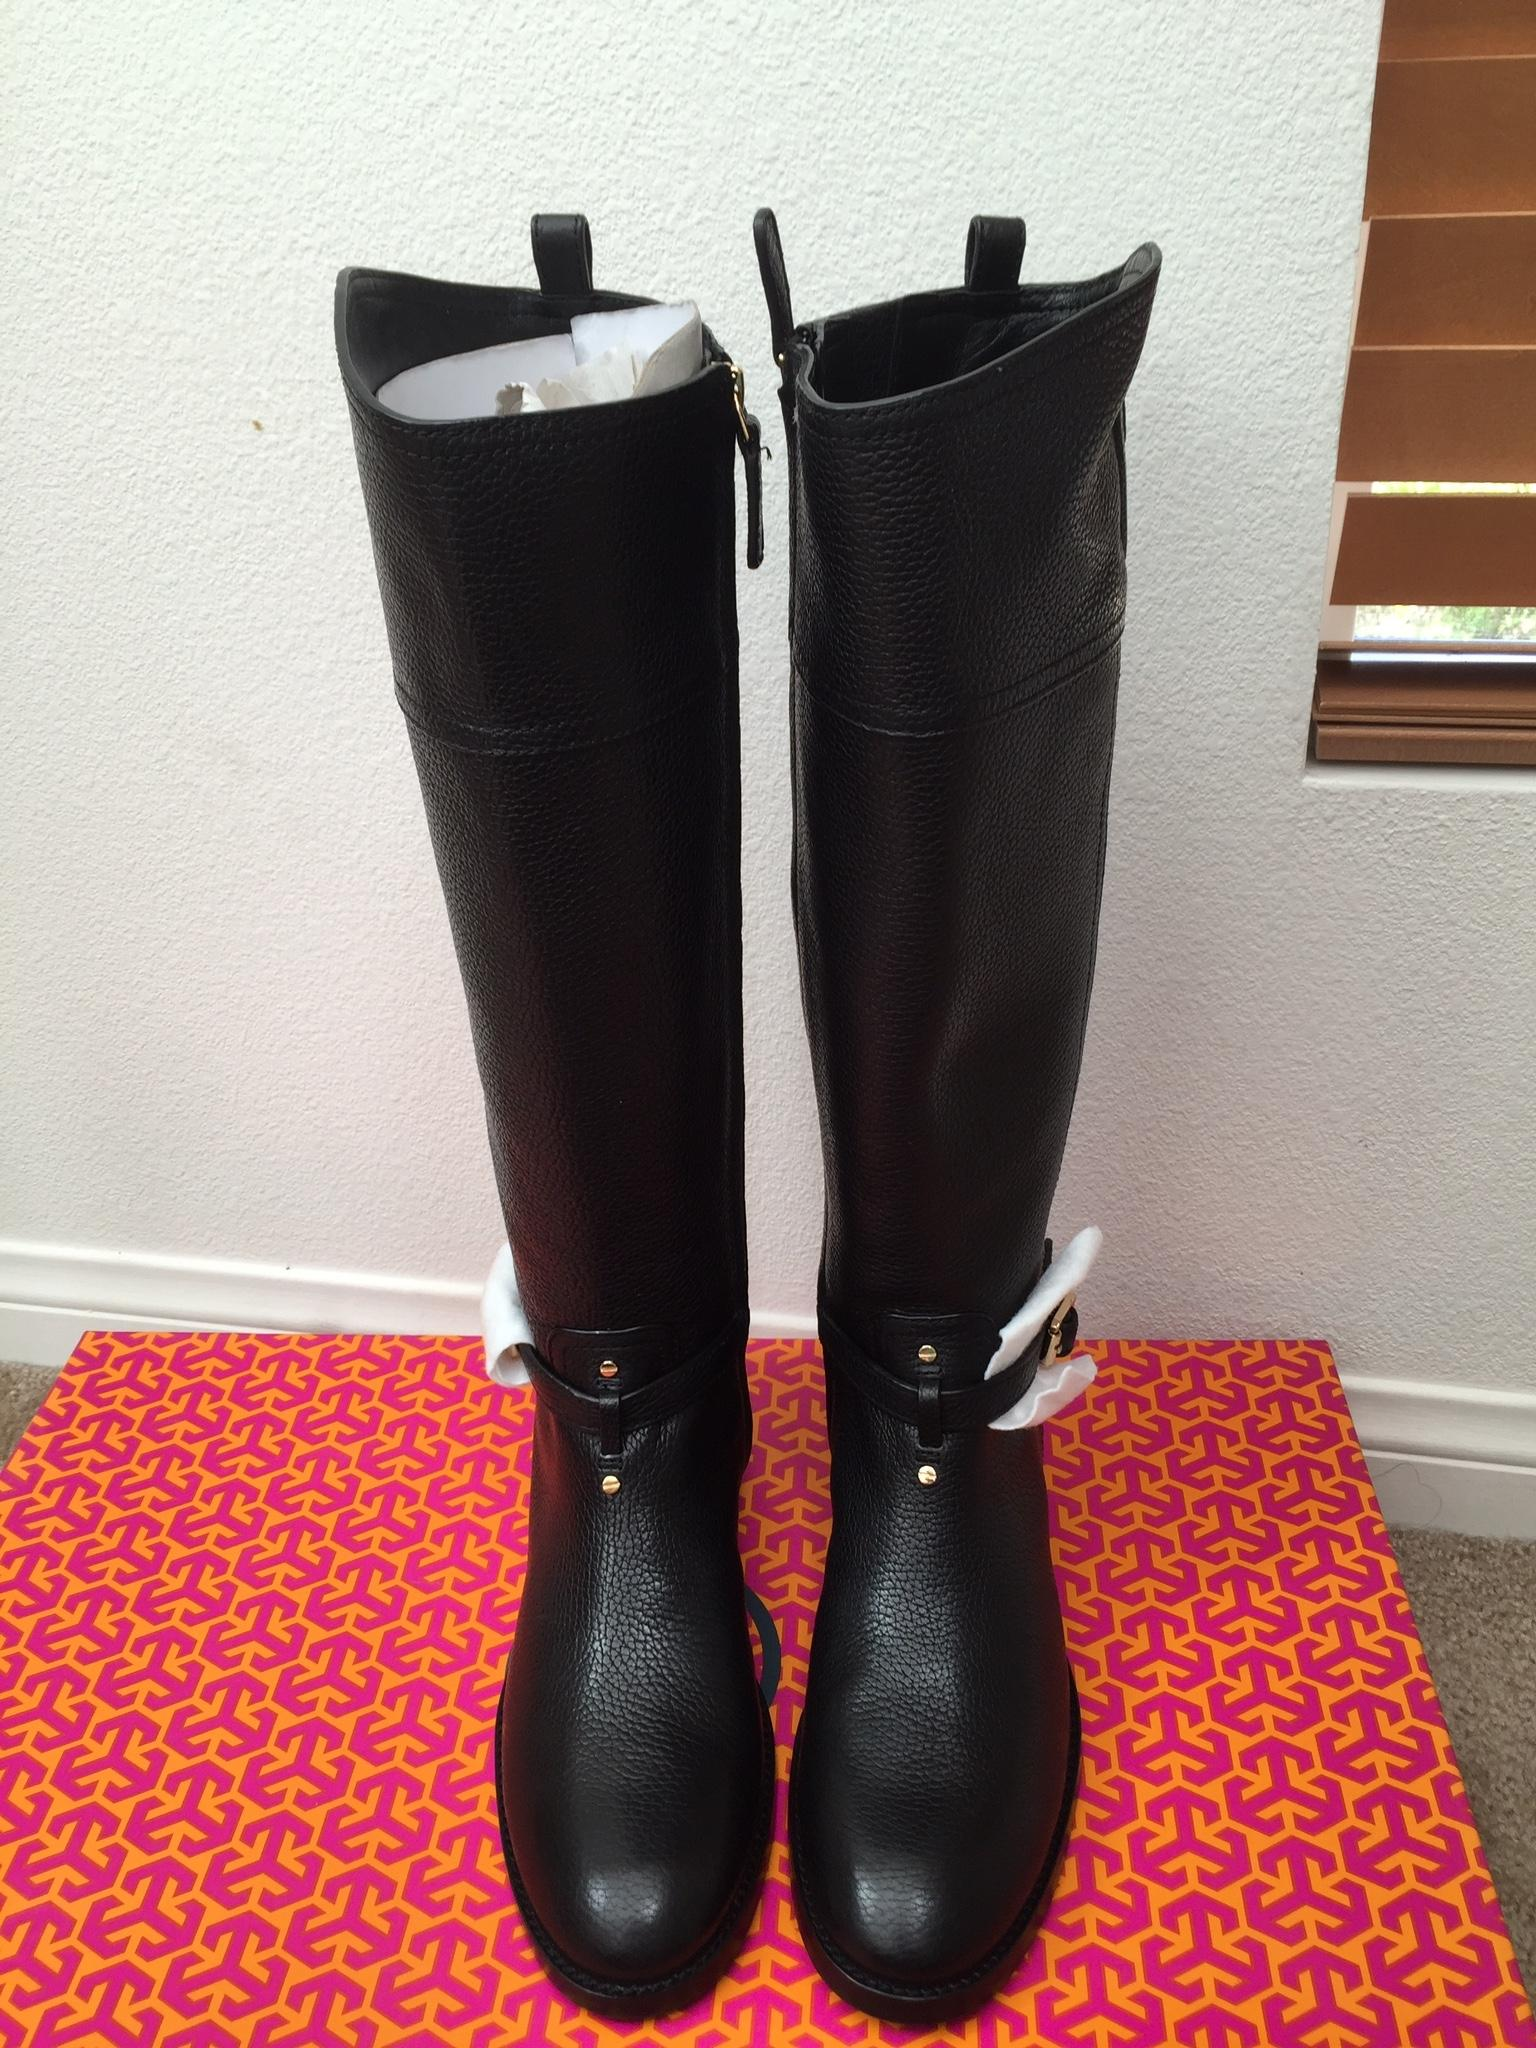 4ef3a8889 ... Tory Burch Black Marlene Marlene Marlene Riding - Tumled Leather Boots Booties  Size US 9 ...